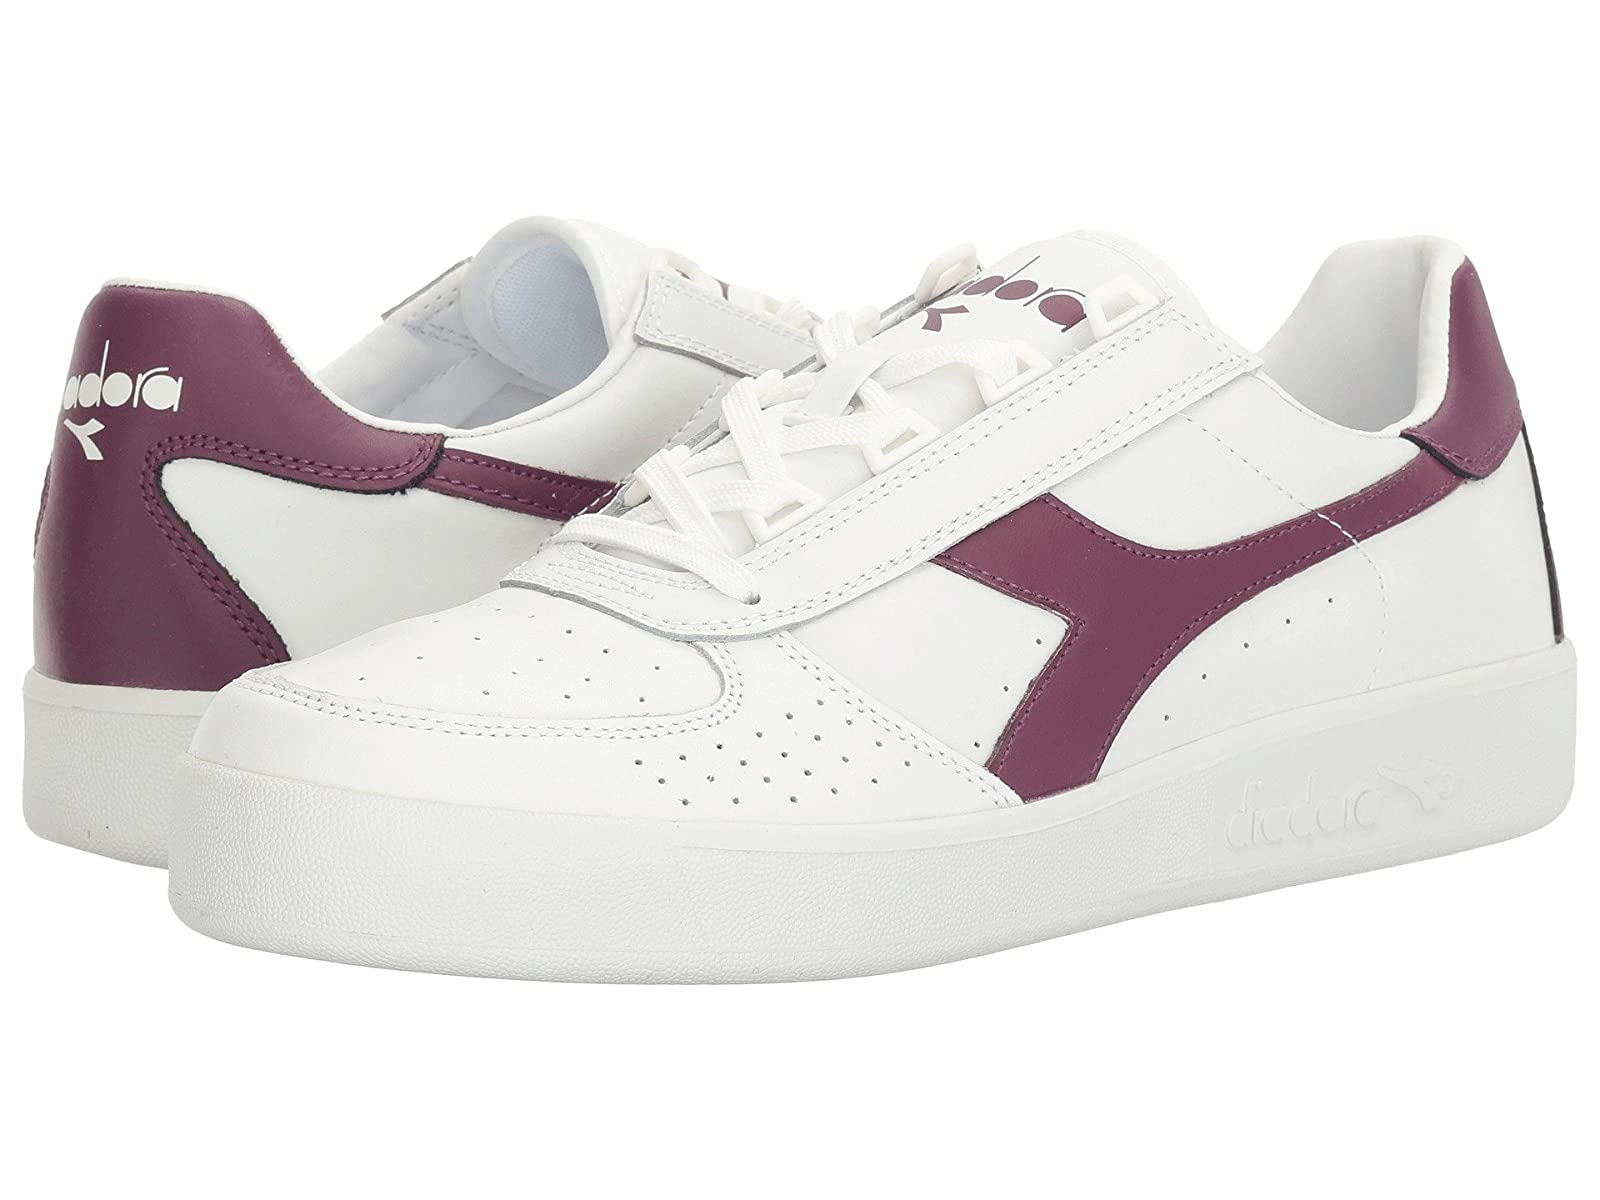 Diadora B. EliteCheap and distinctive eye-catching shoes